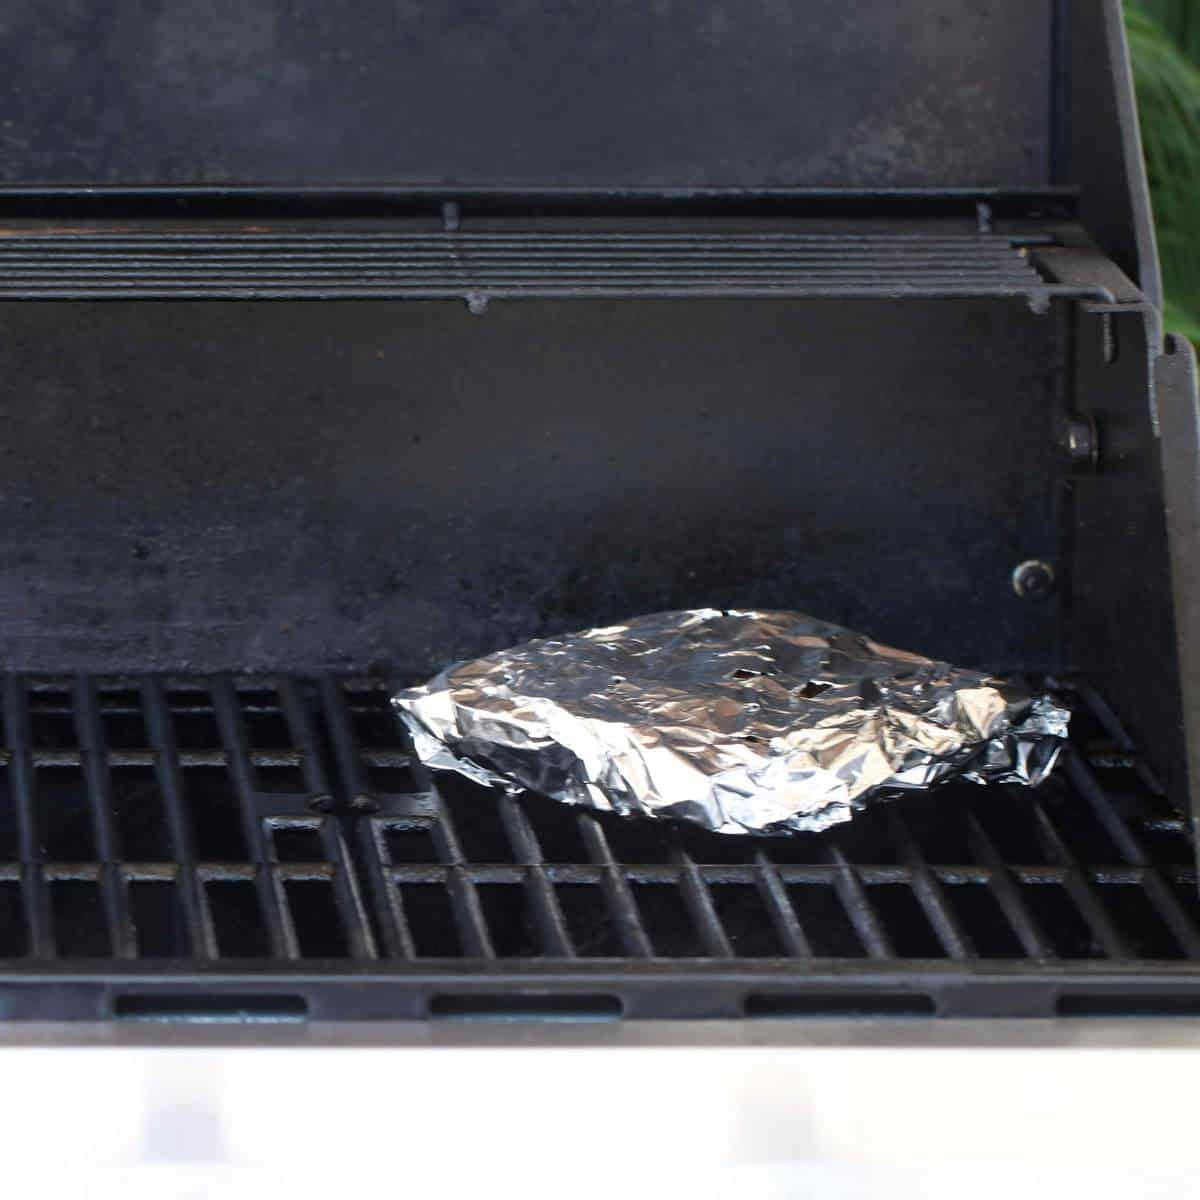 chunks of wood wrapped in a foil paper on the grill for smoking